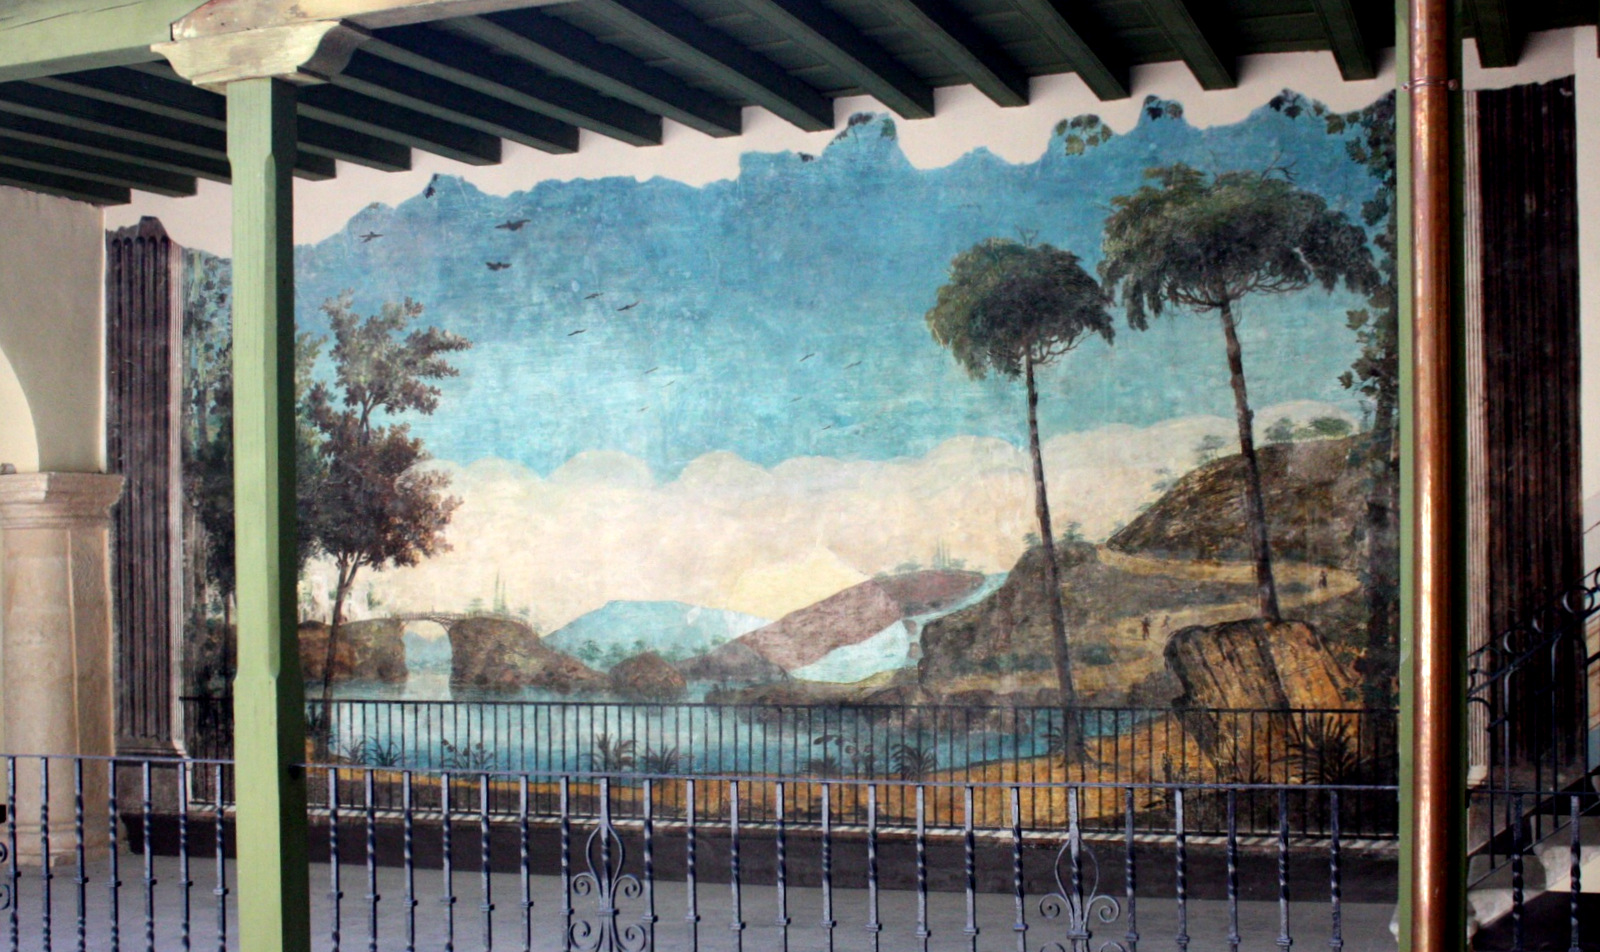 Unidentified artist, detail, Calle Amargura 65, early 19th c., fresco or semi-fresco[?]